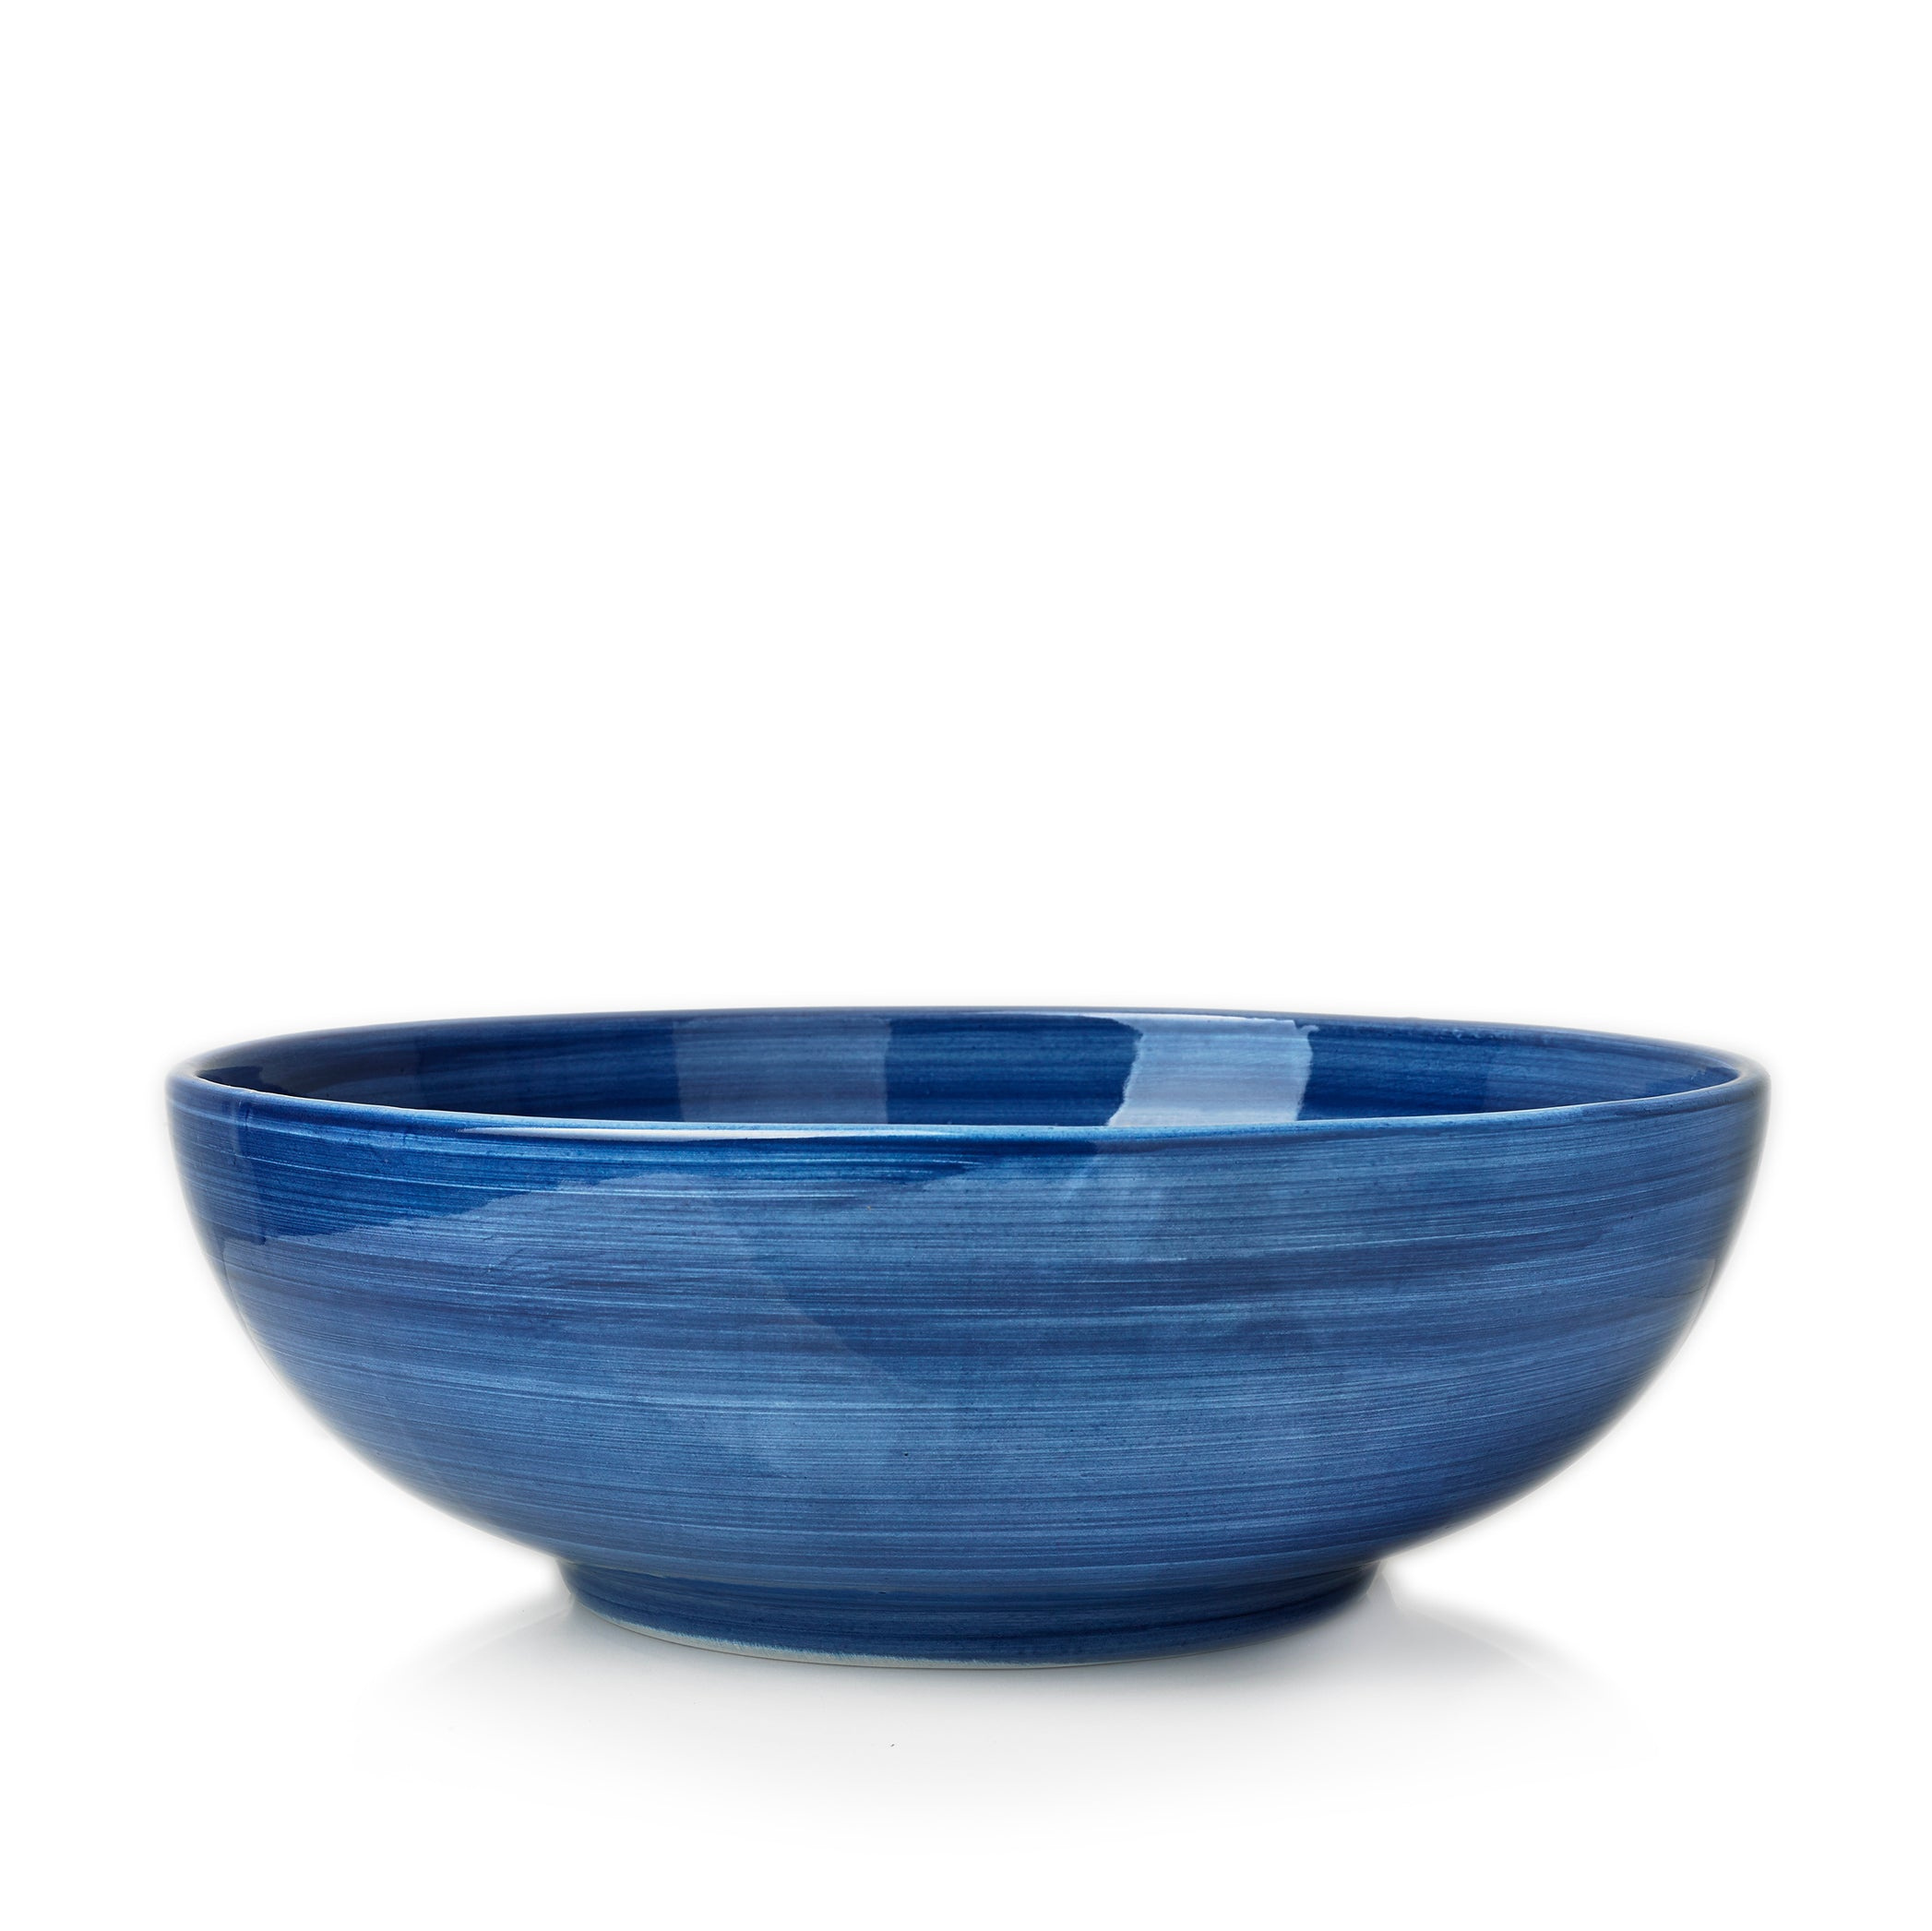 "S&B ""La Couronne"" 30cm Ceramic Large Serving Bowl in Blue"